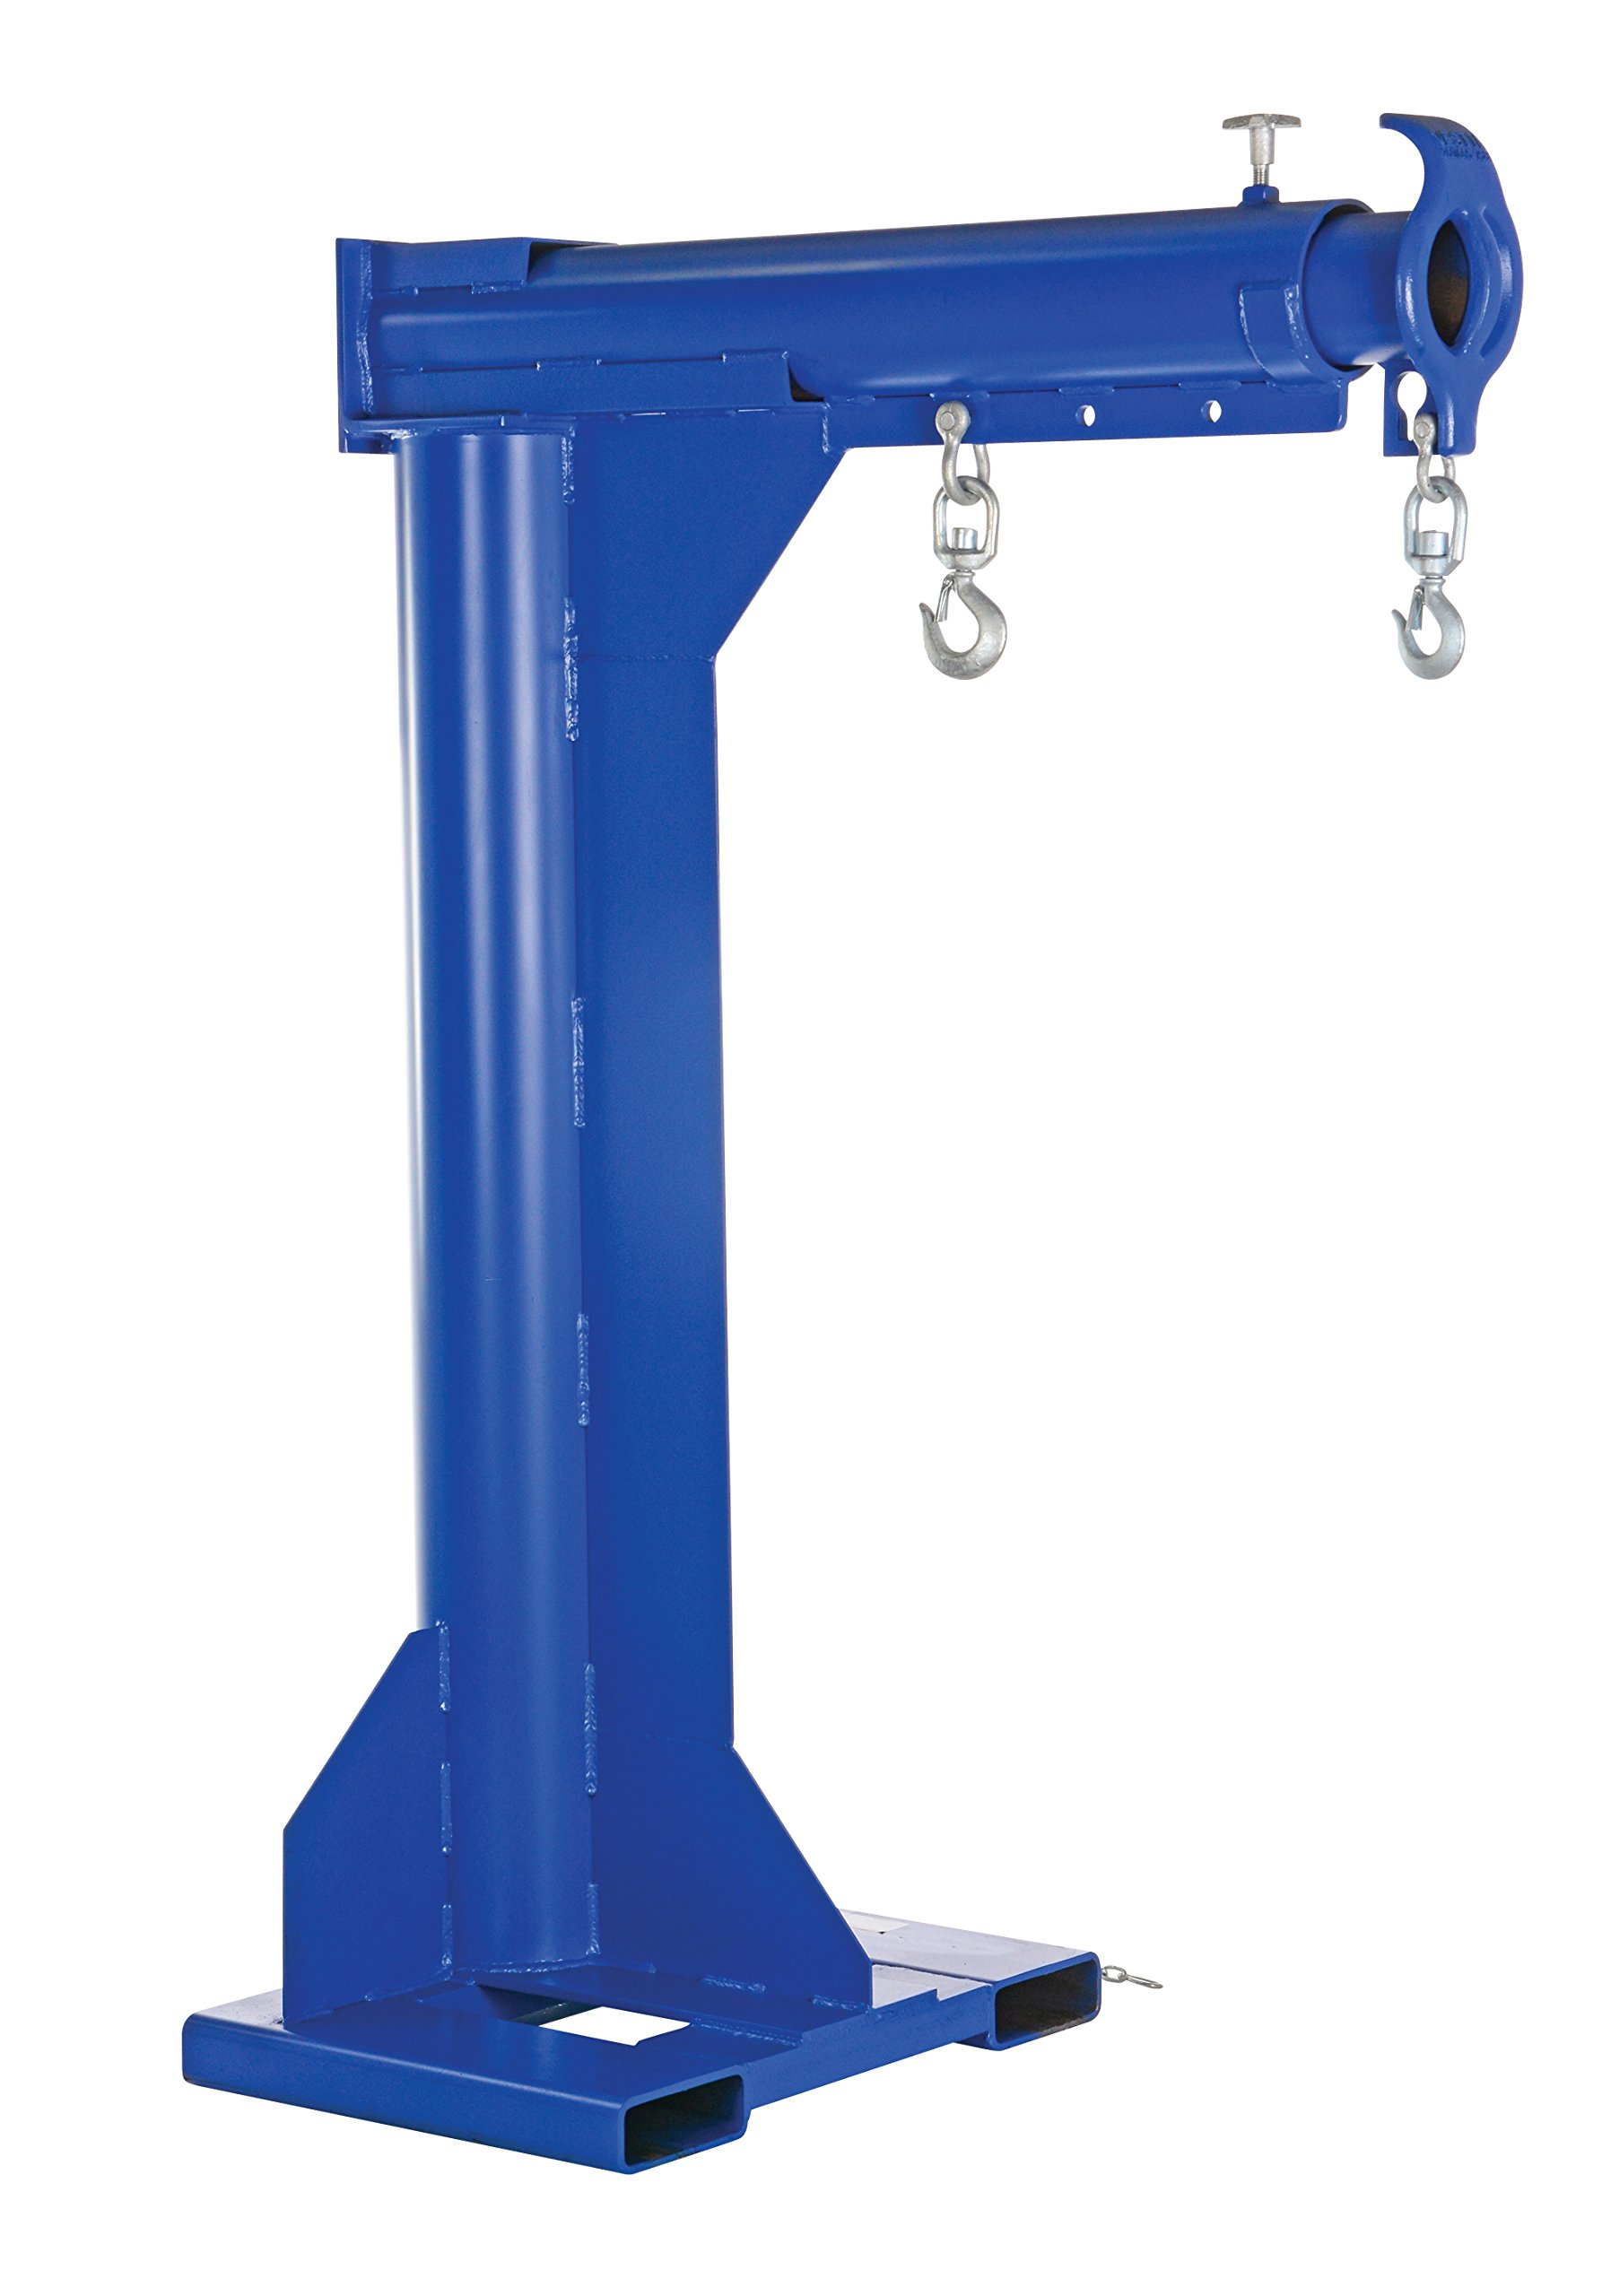 Vestil LM-HRT-6-24 Steel Telescoping High Rise Boom, 6000 lb Capacity, 24'' Fork Pocket Center, Overall LxWxH (in.) 32 x 54.875 x 79.8125, Overall Extended Length (in.) 92-5/8, Minimum Hook Point (in.) 30, Maximum Hook Point (in.) 90, Blue